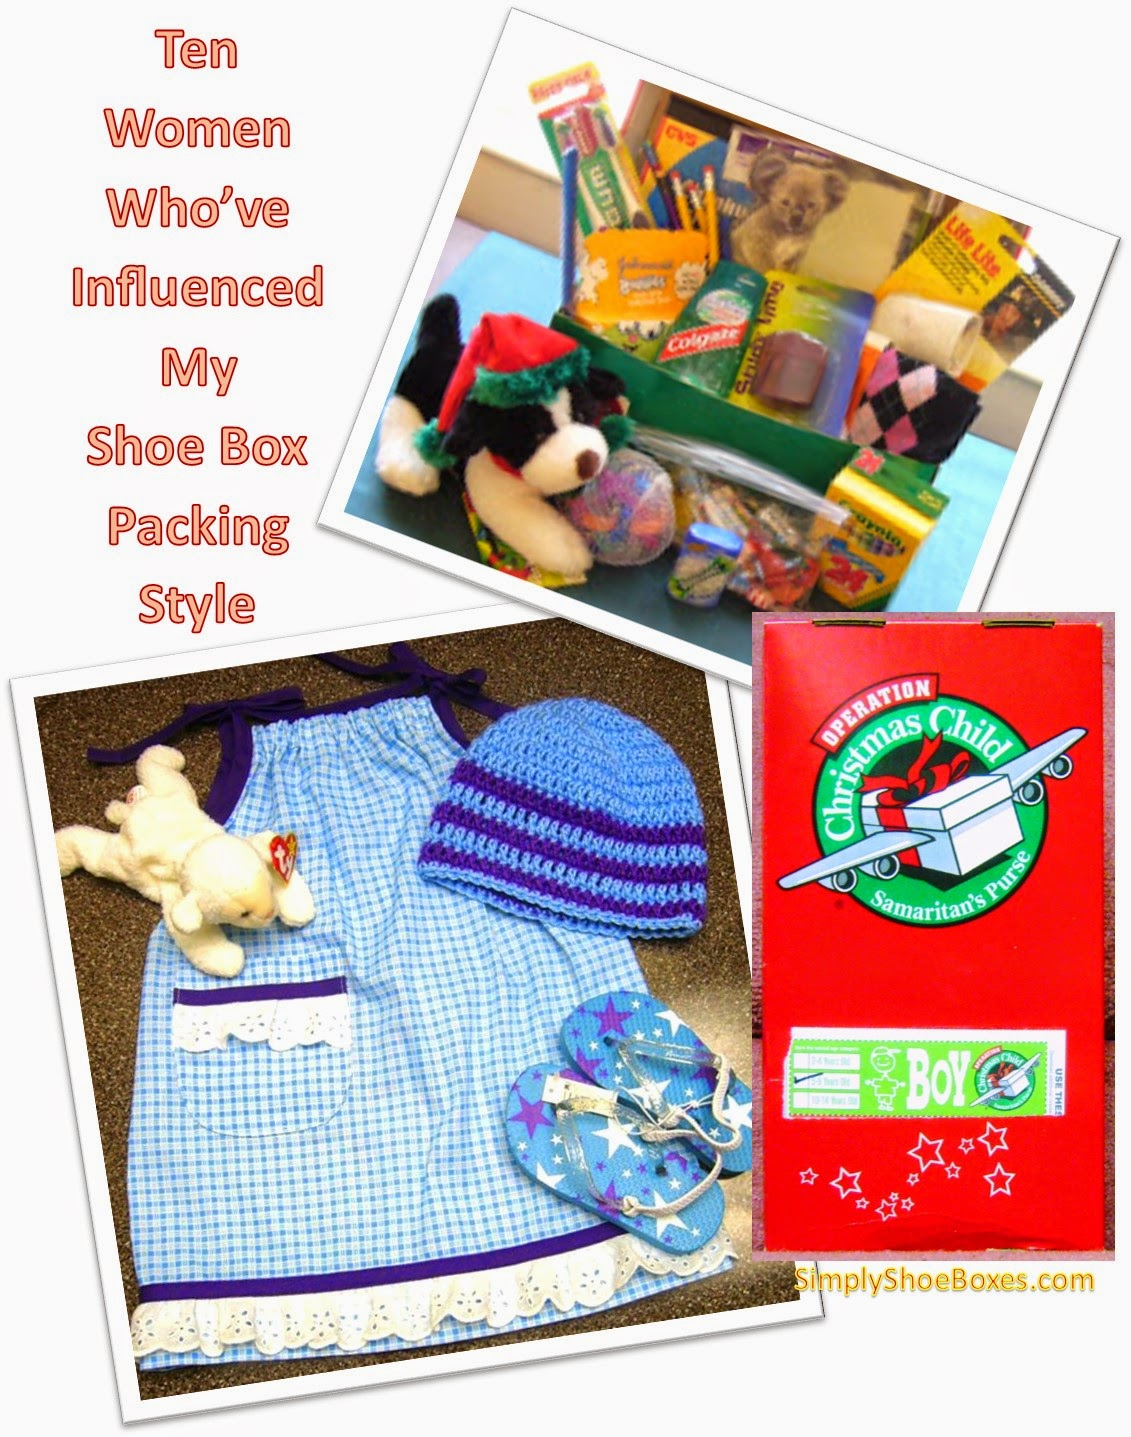 Simply shoeboxes ten women who have inspired my operation